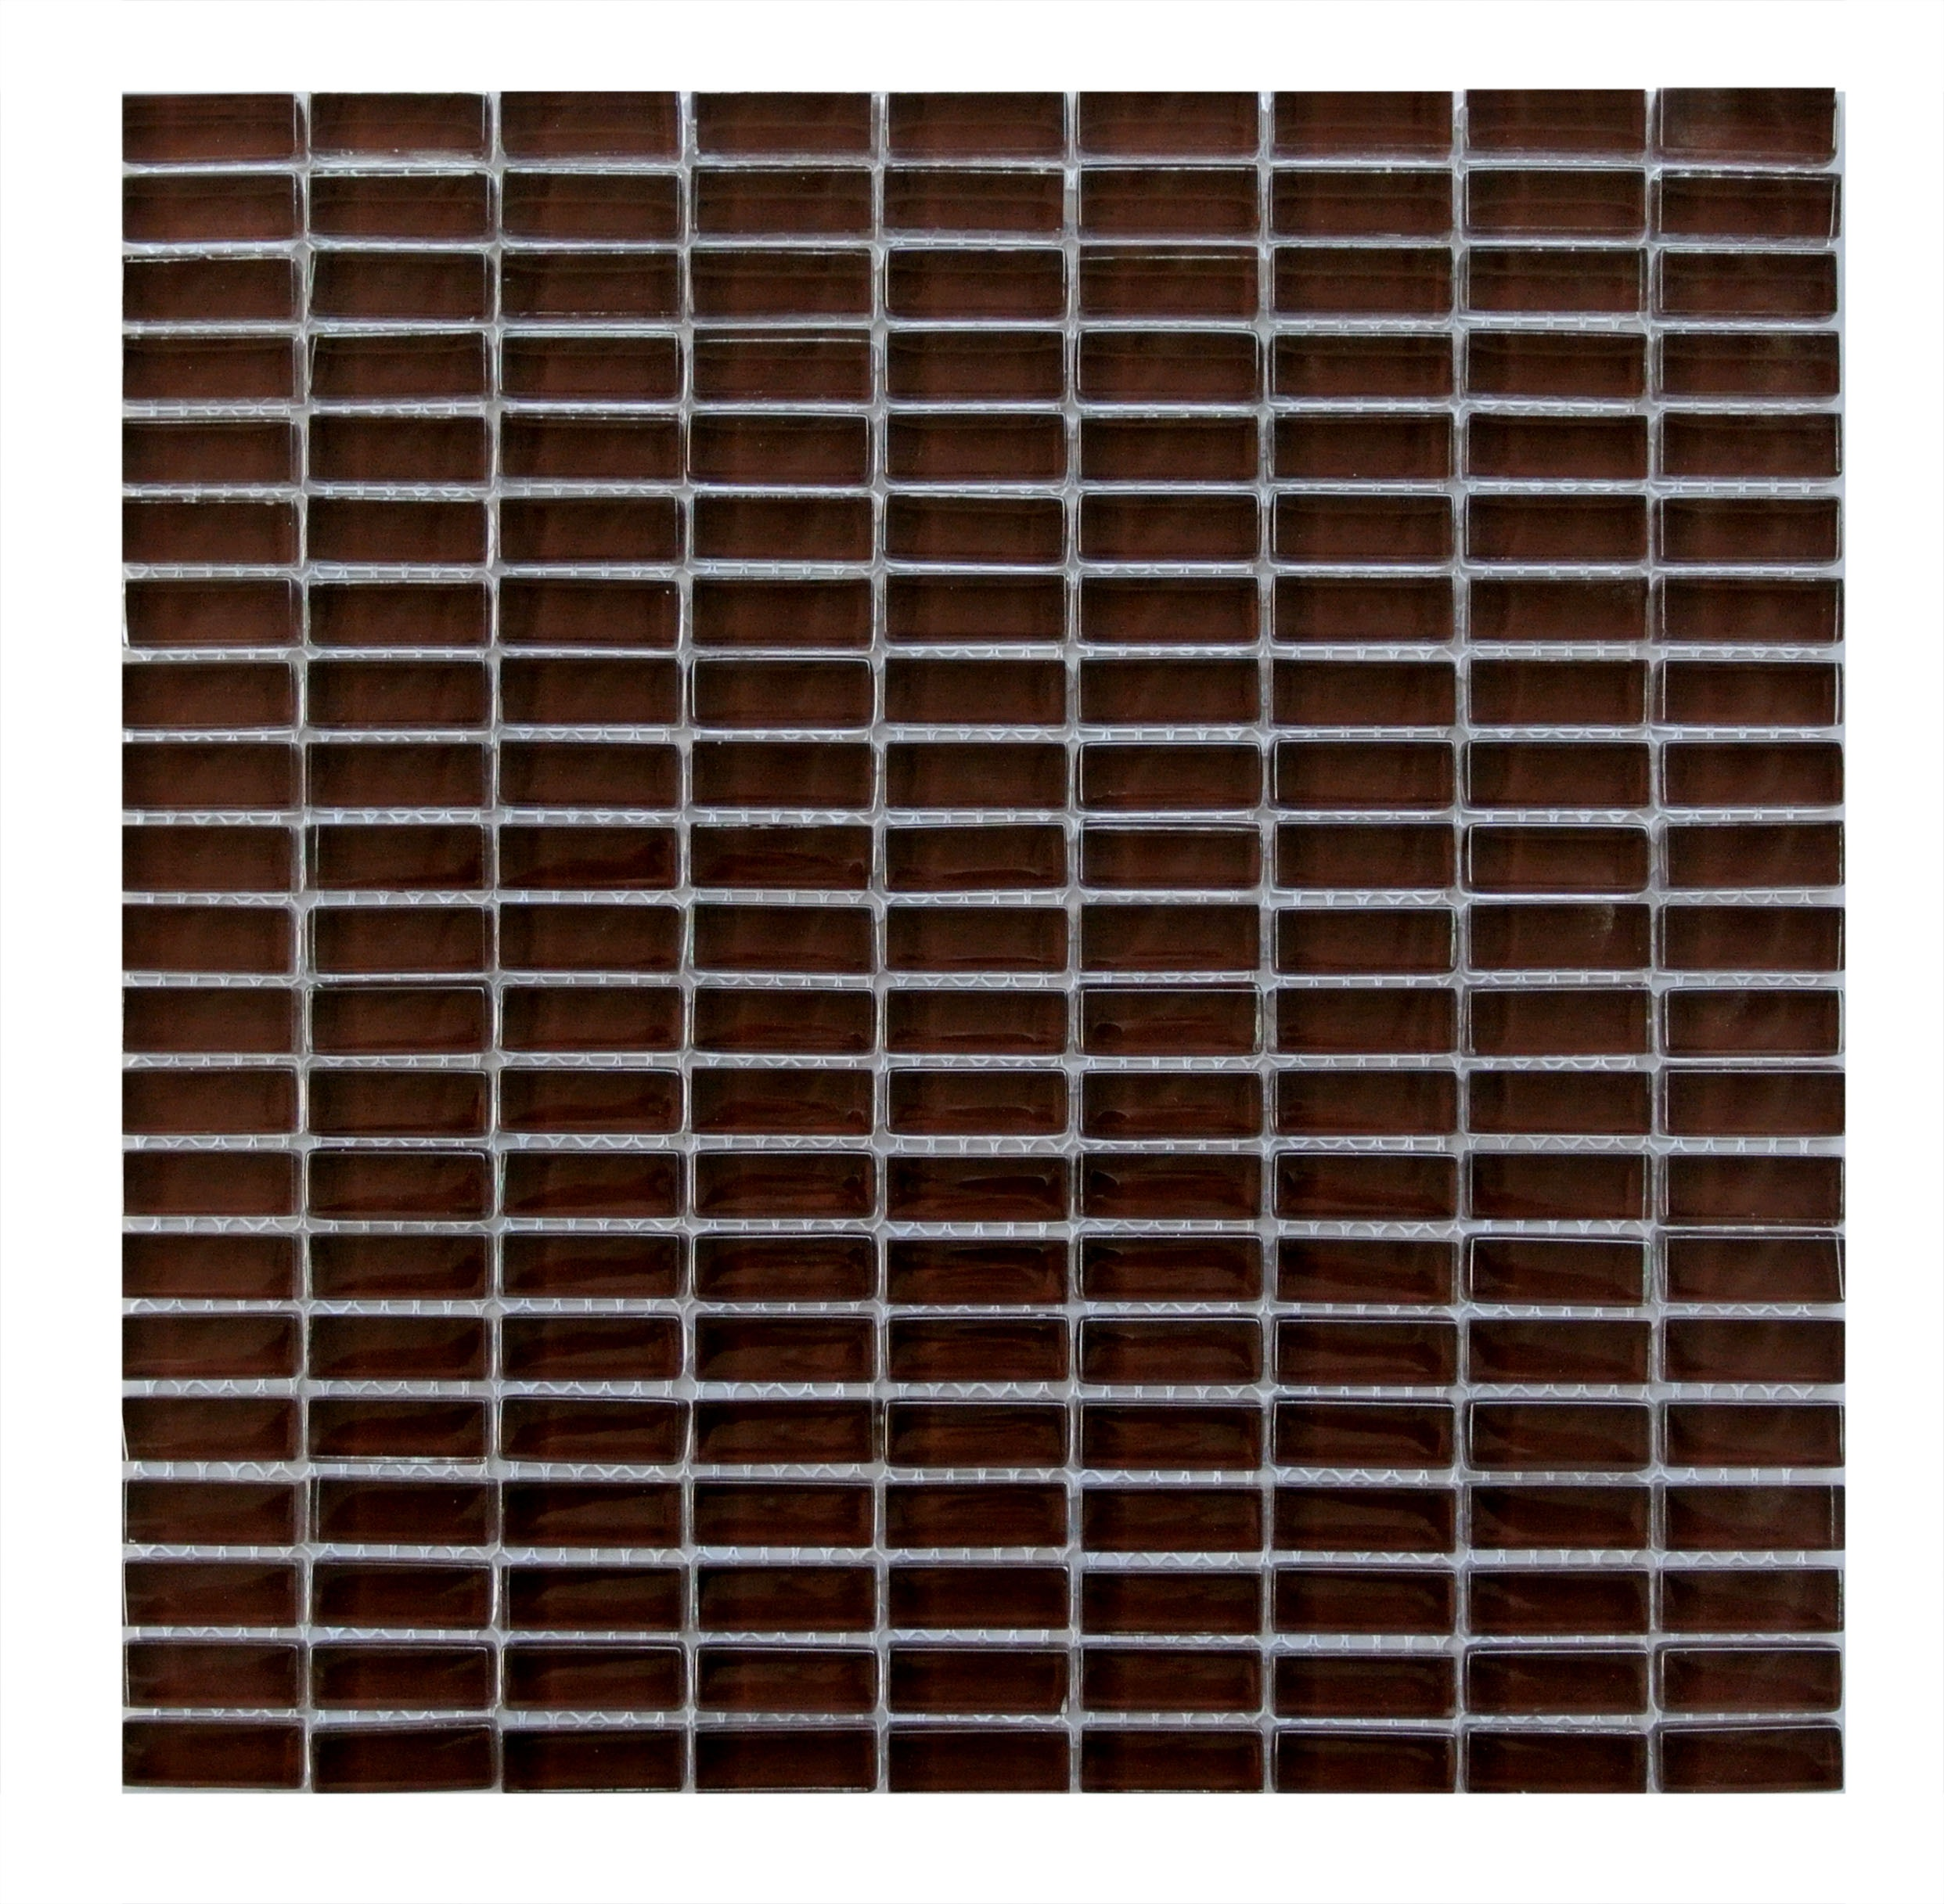 Epiphany 0.5 in x 1.25 in Glass Rectangle Mosaic in BROWN Glossy